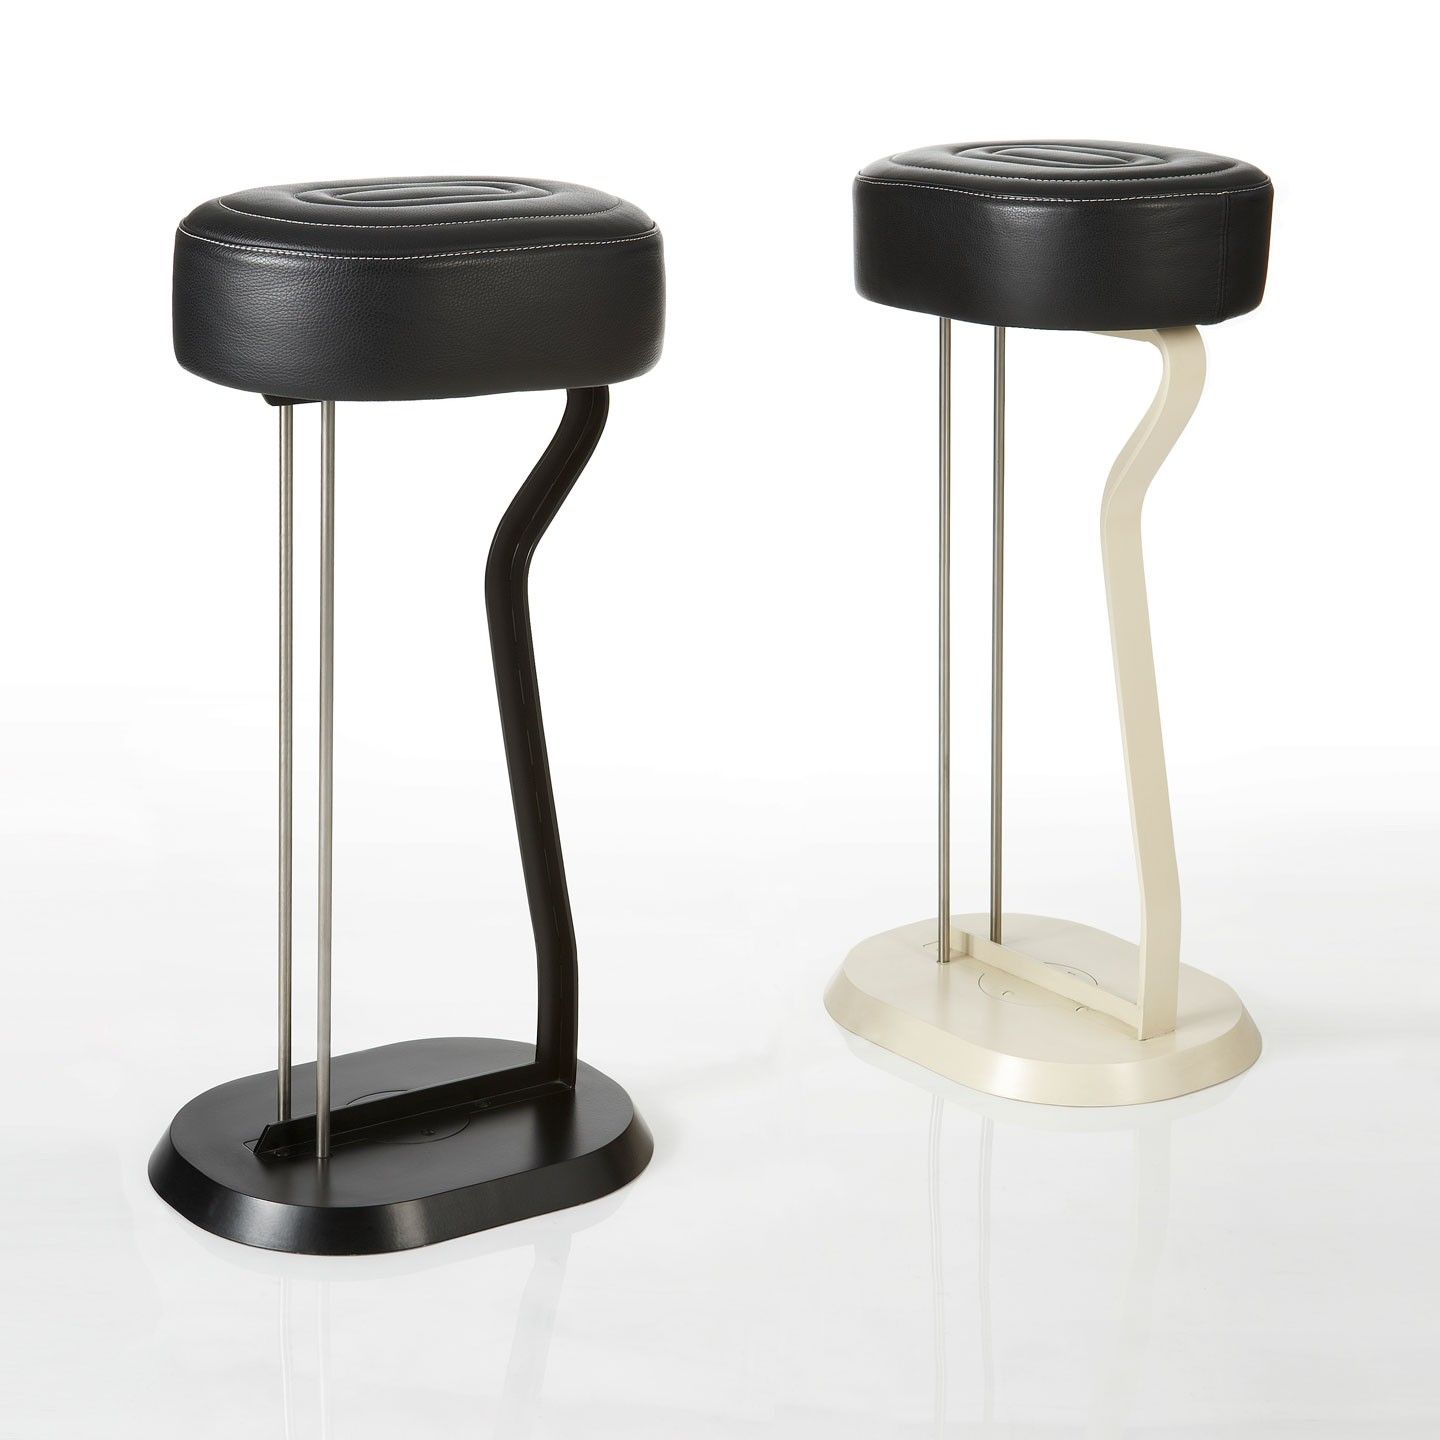 eileen grey furniture. Eileen Gray Bar Stool No 2 Designed In Created Not Only Sofas And Chairs But Also A Series Of Unusual Unique Stools. Grey Furniture